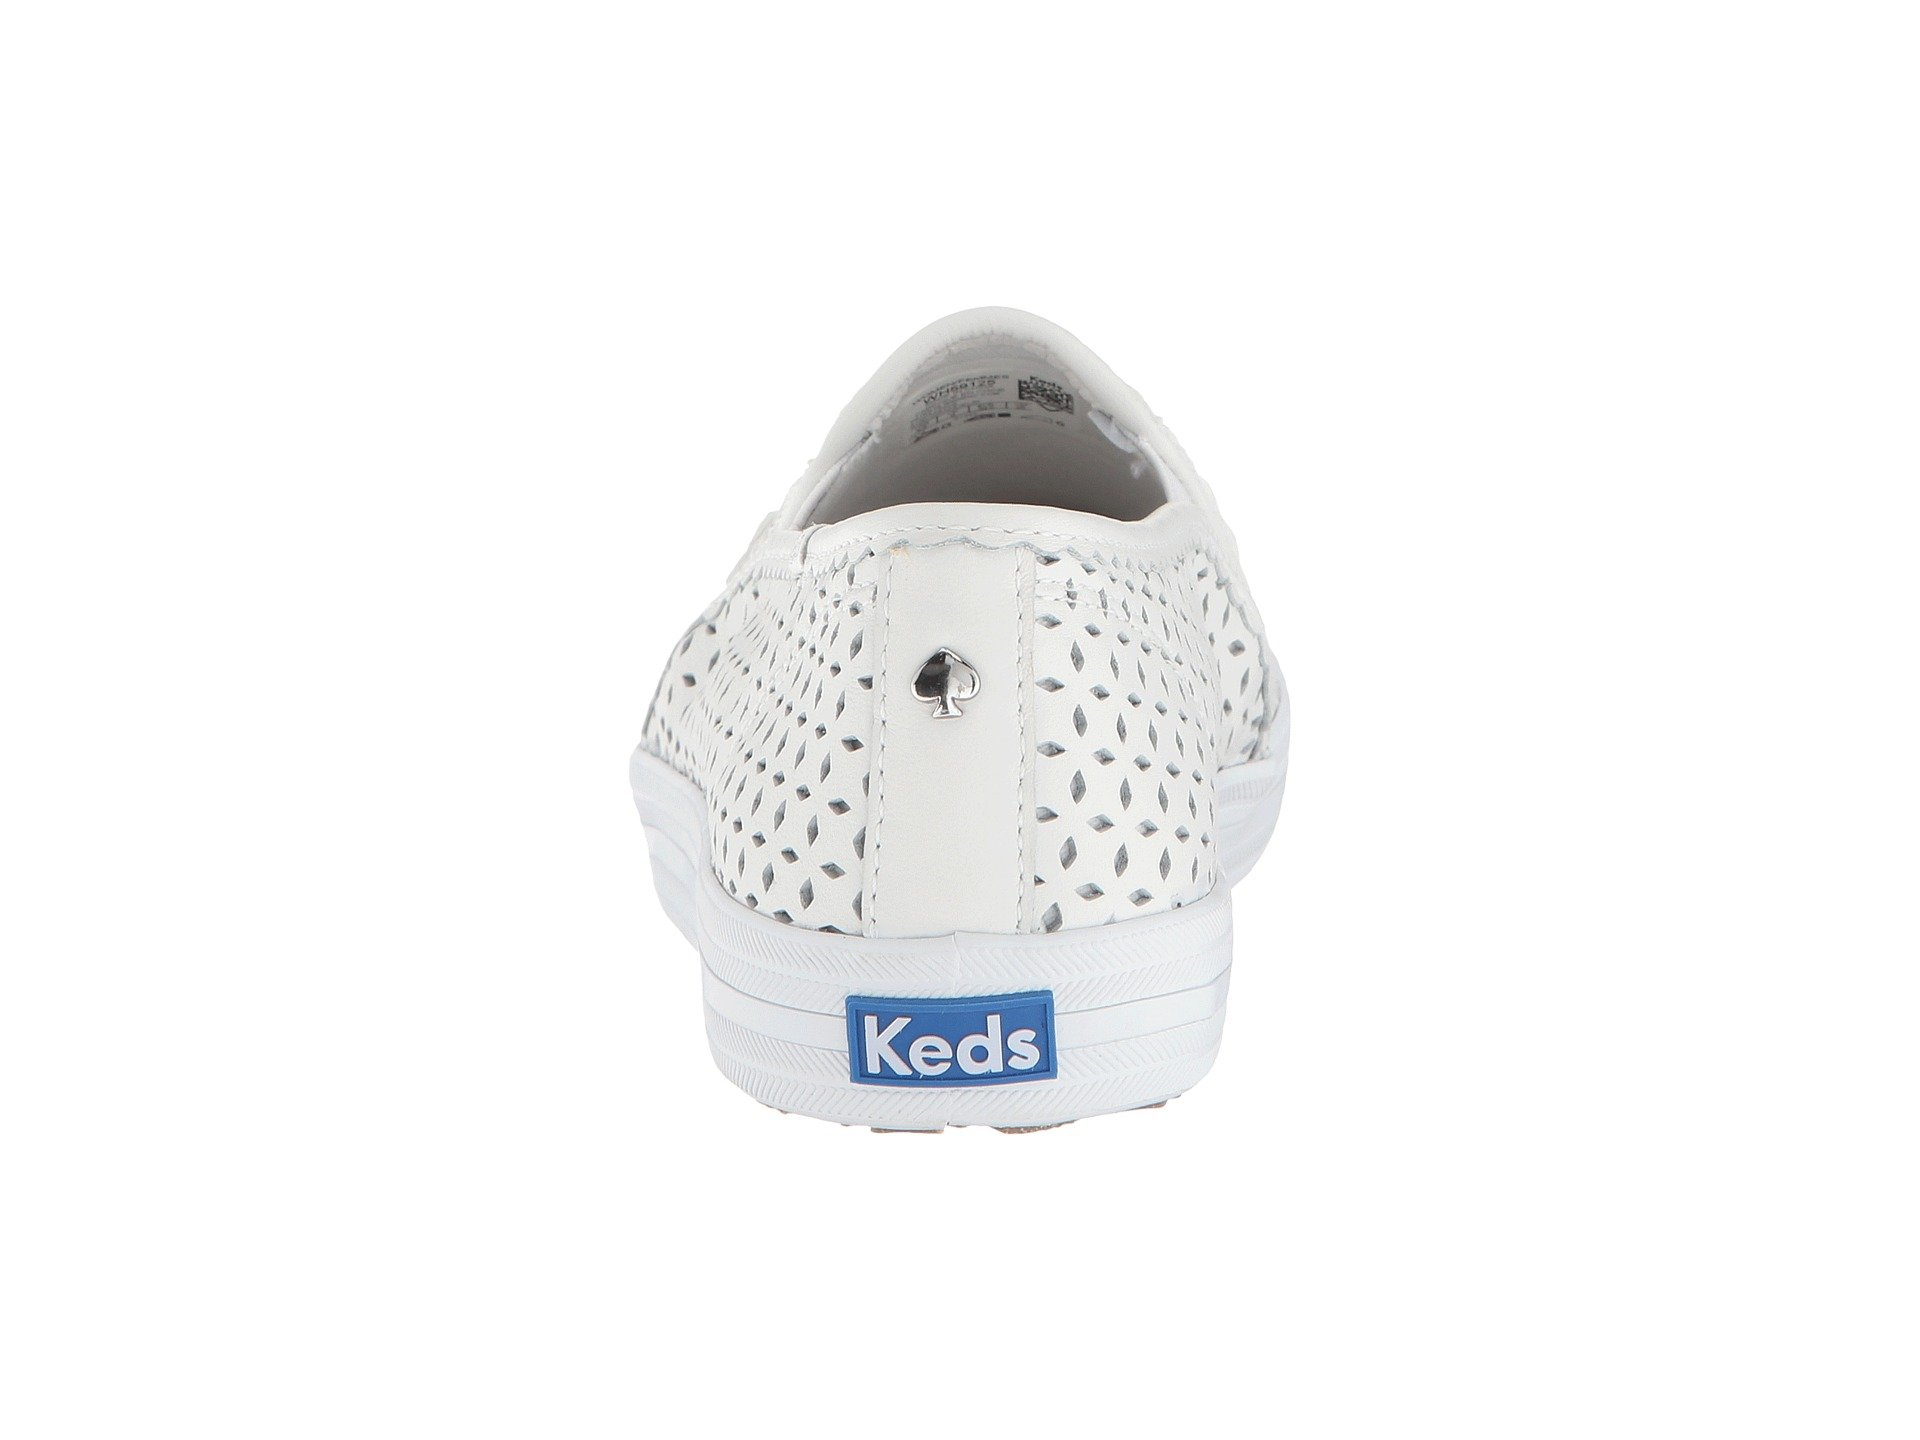 bdd8d562458 Keds x kate spade new york Double Decker Eyelet at Luxury.Zappos.com